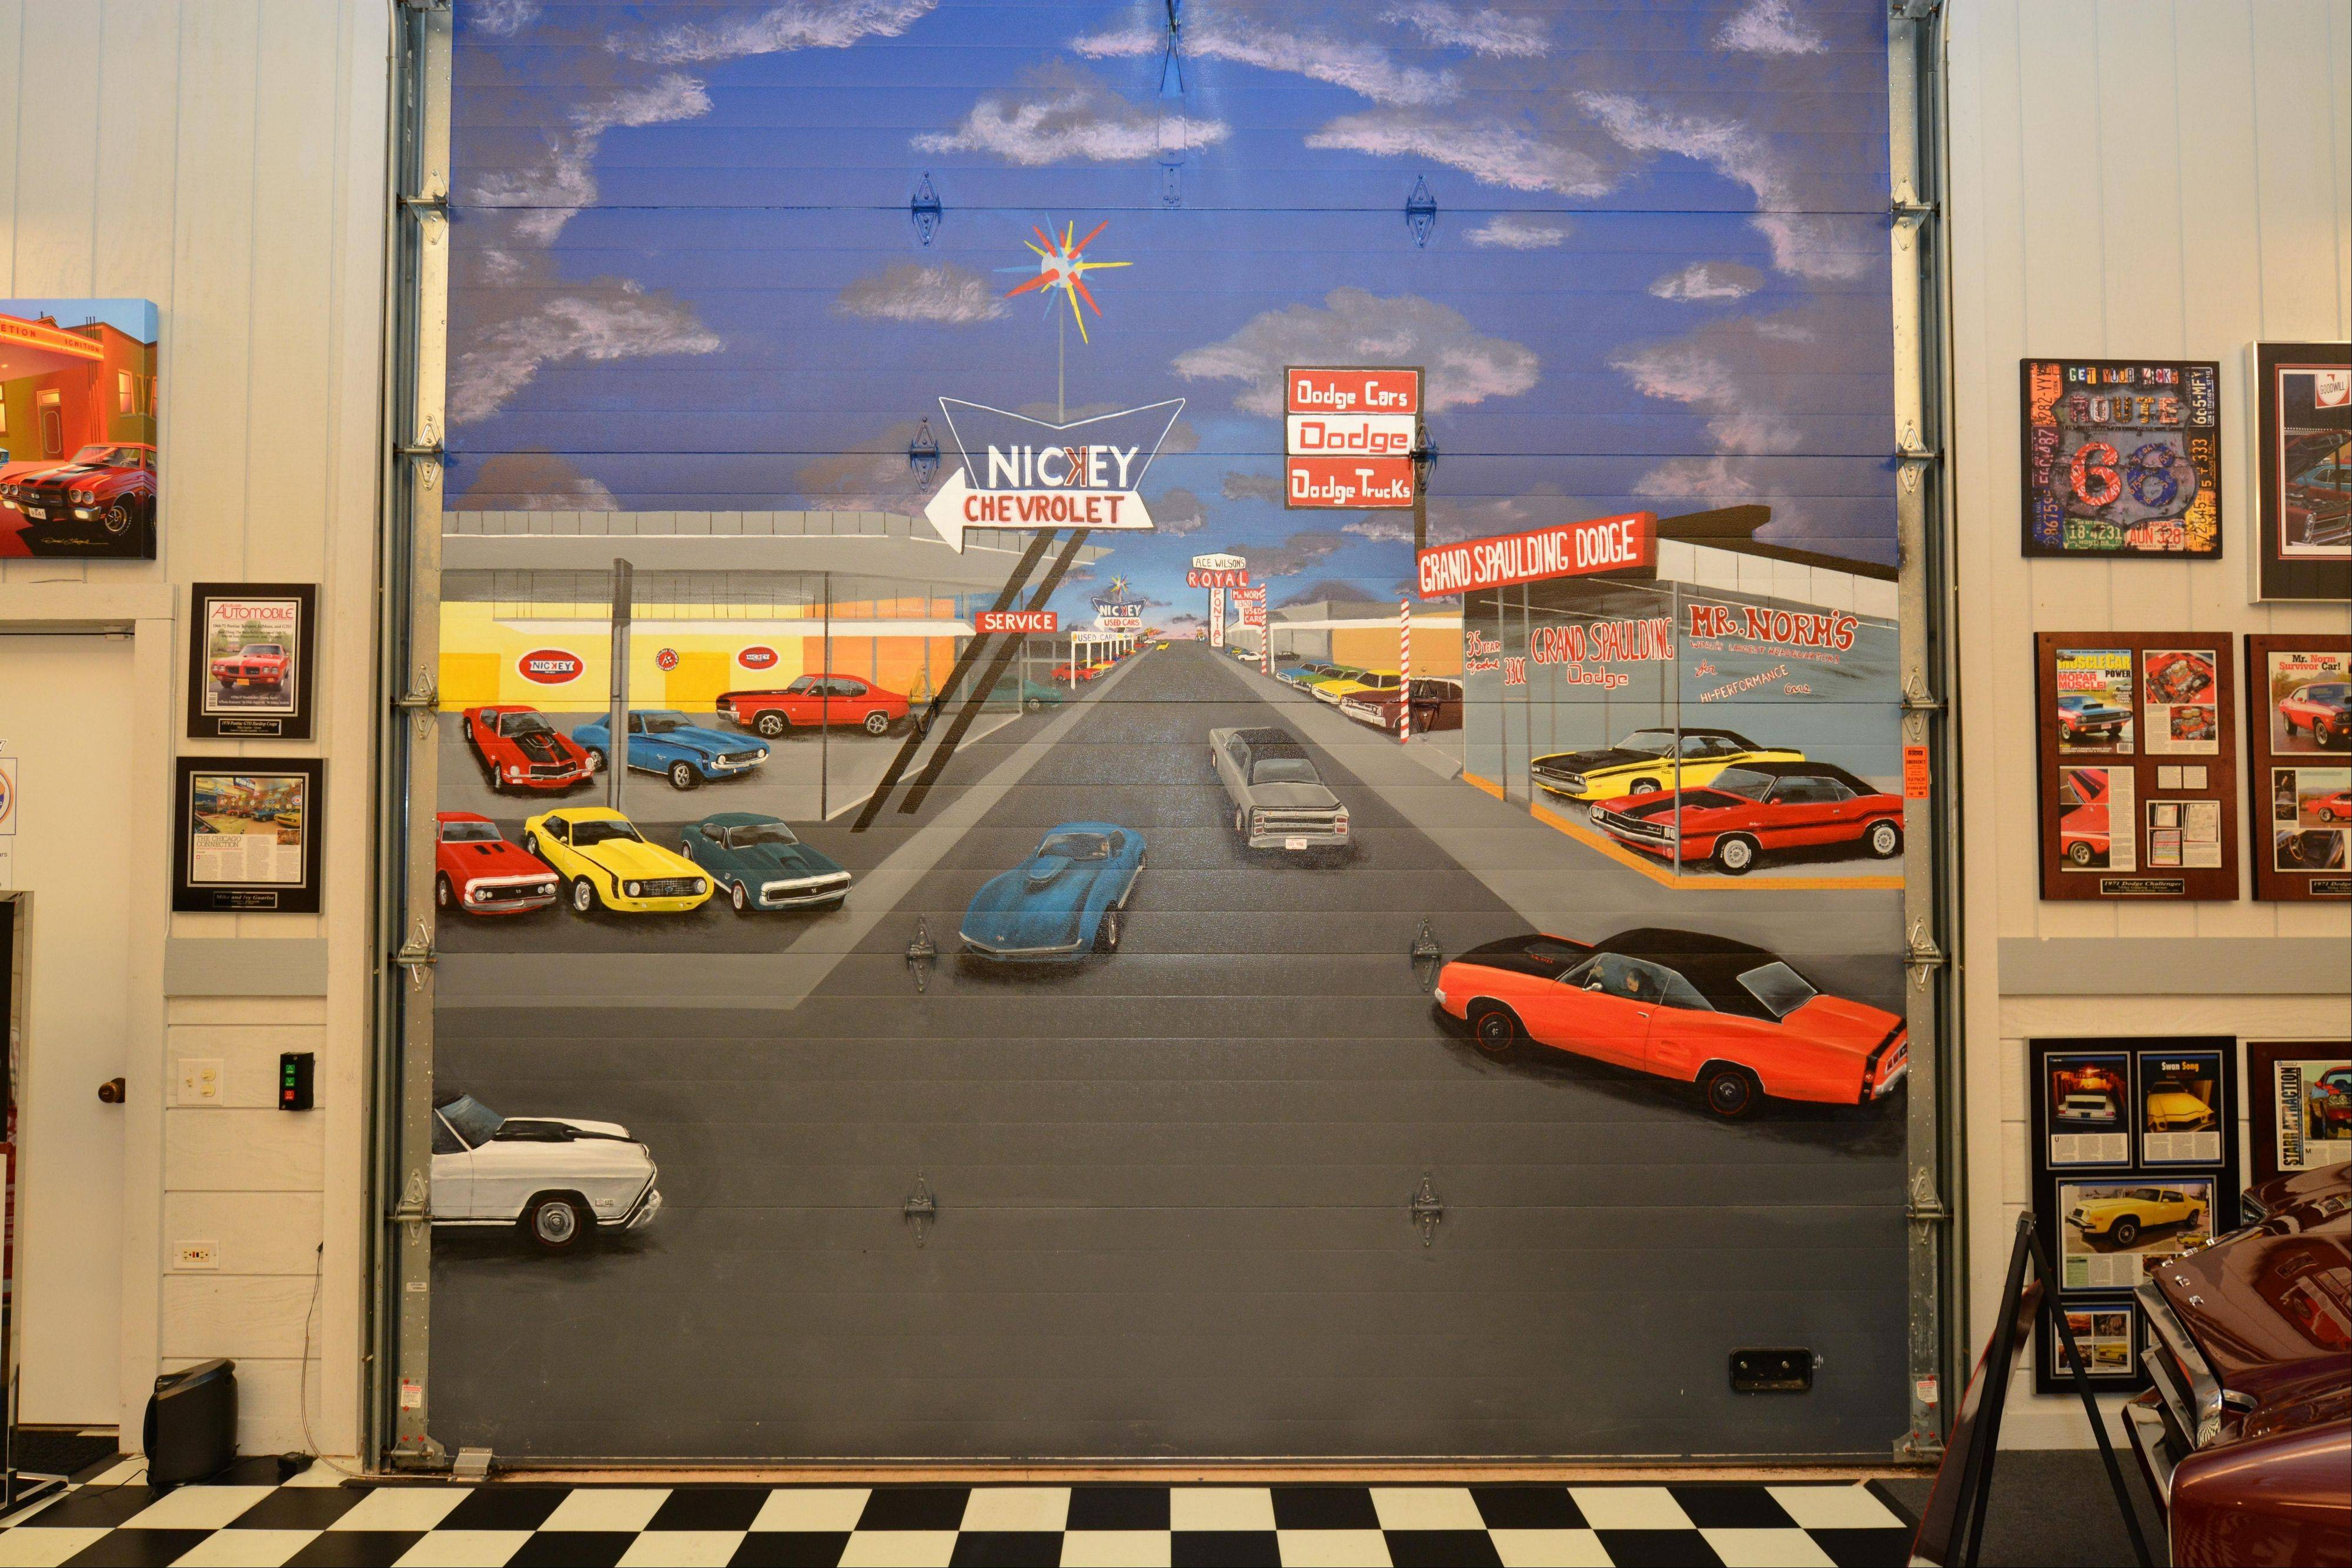 A mural painted on the garage door depicts some of Mike's treasured cars and precious memories.